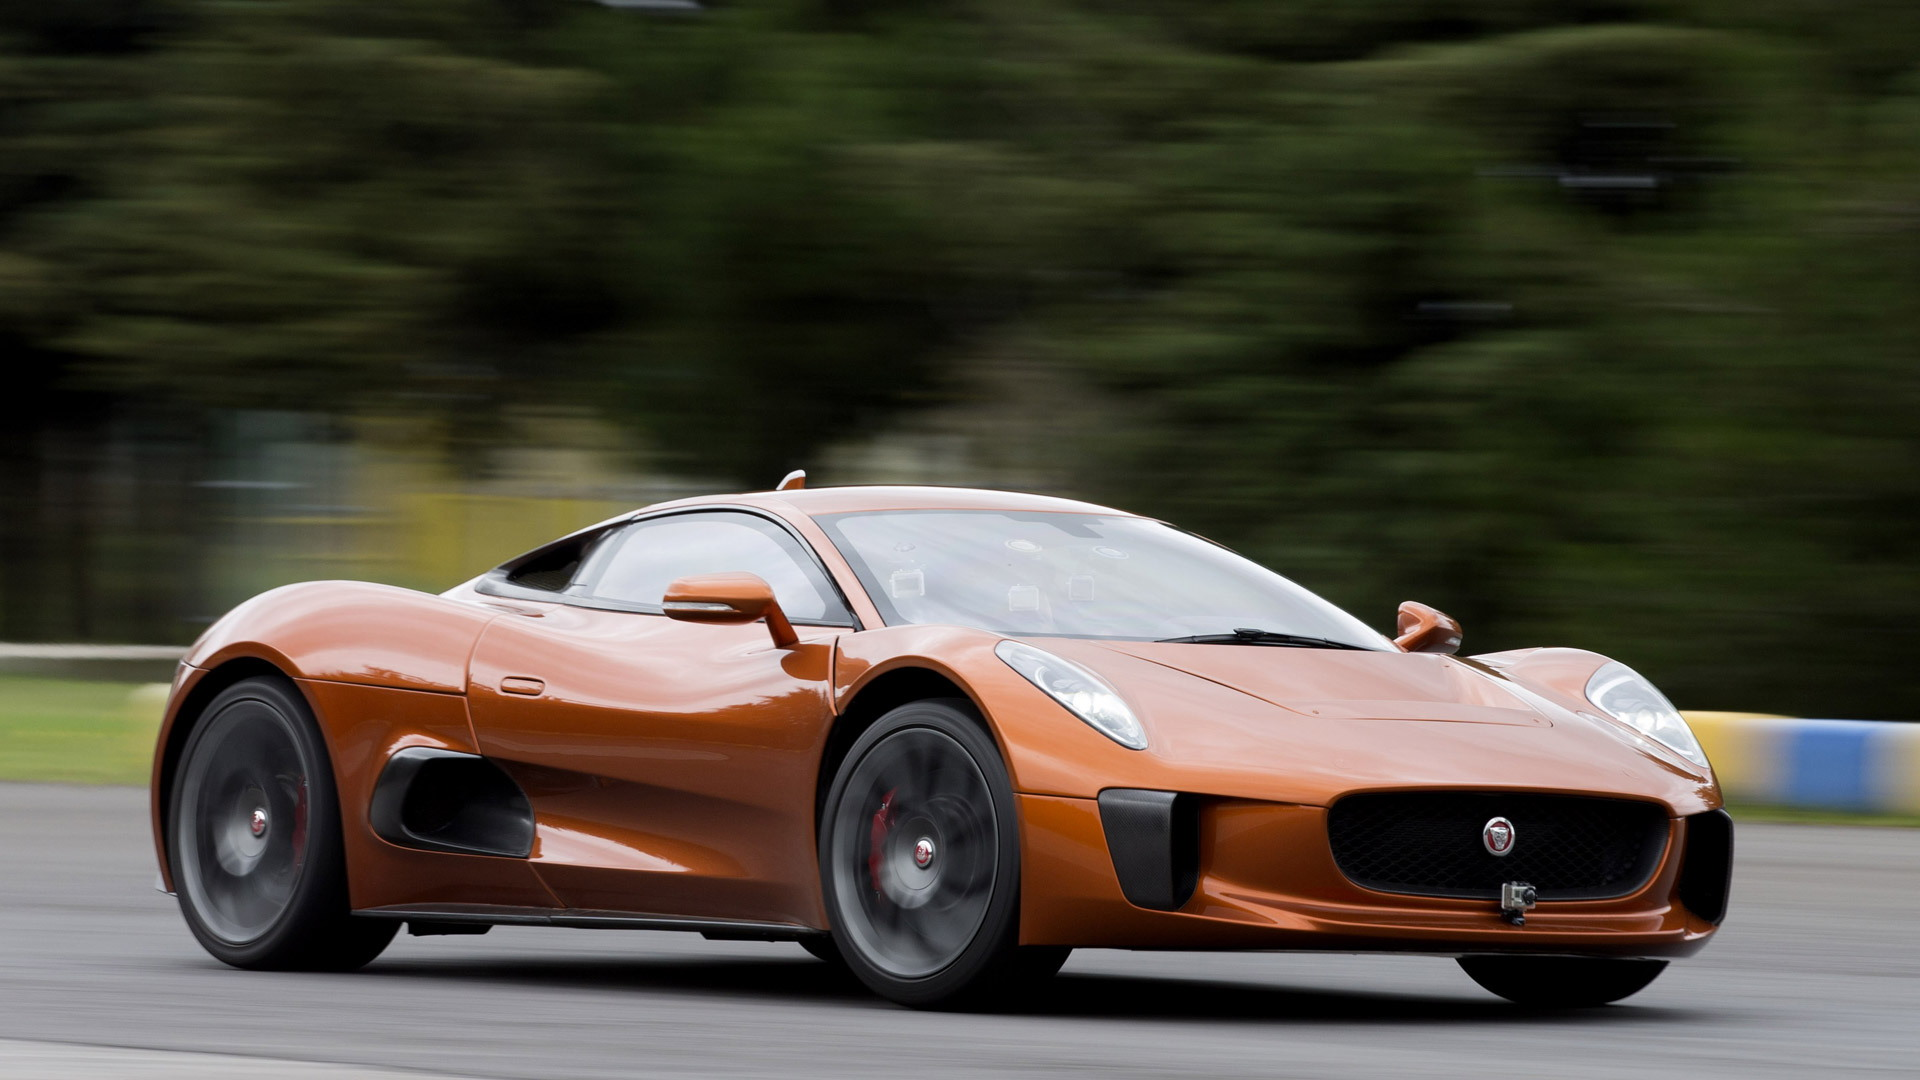 Felipe Massa drives the Jaguar C-X75 concept